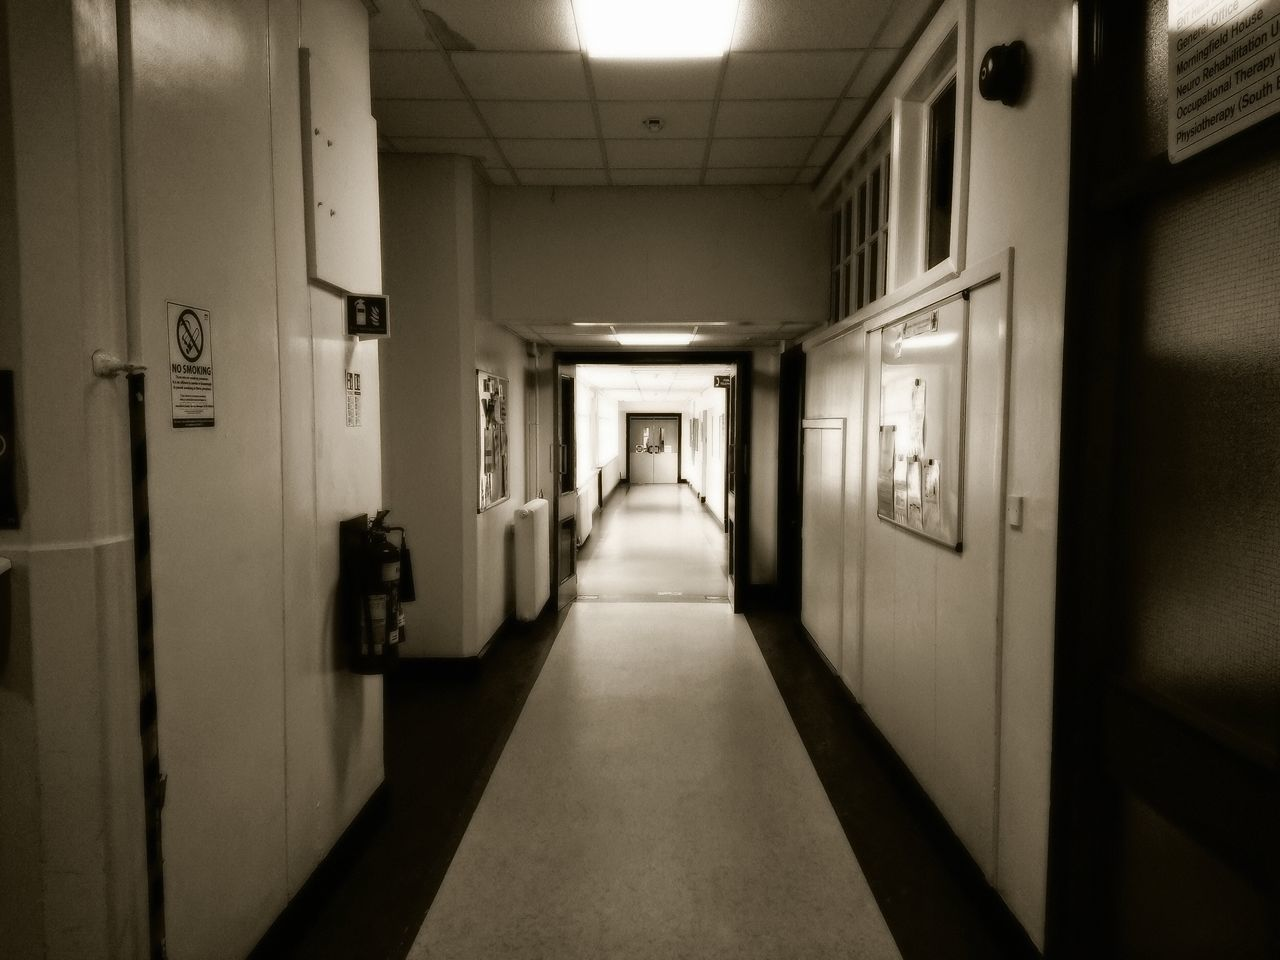 Hospital corridor B/W edit Uk Scotland Eye Em Scotland Hospital Hospital Building Indoors  Architecture_collection Old Building  Building Interior Indoor Photography Inside Photography Open Door Corridor Healthcare And Medicine The Way Forward B/W Photography B/w Edit Interior Oper Doorway No People Black And White Edits Hospital Corridor Buildings Architecture Buildings